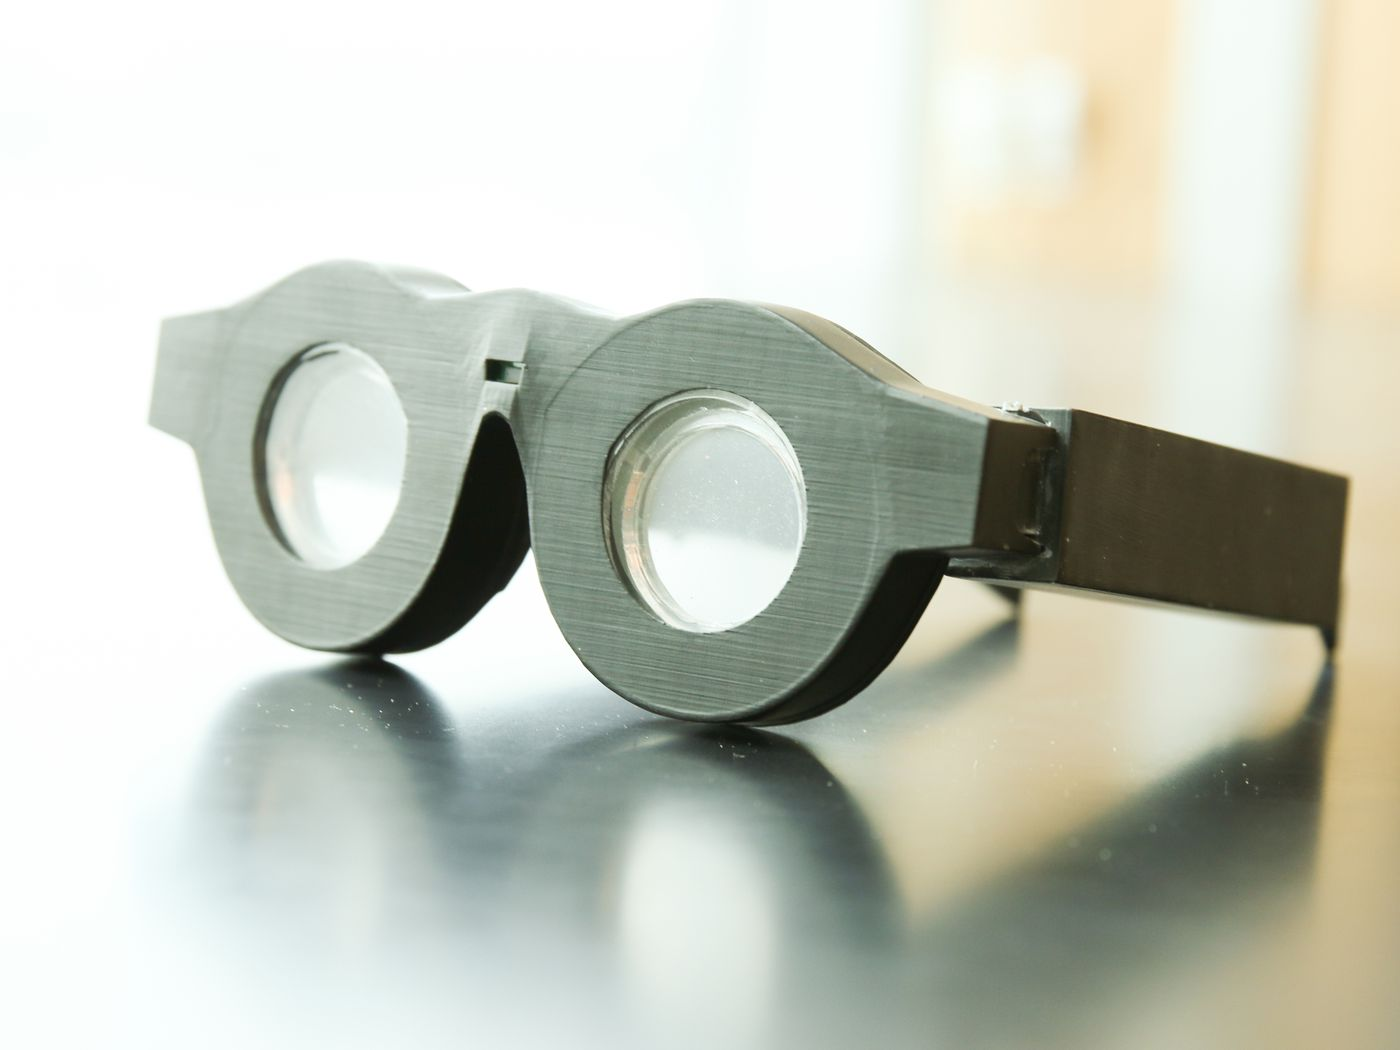 eea882230c1 These smart glasses automatically focus on what you re looking at - The  Verge